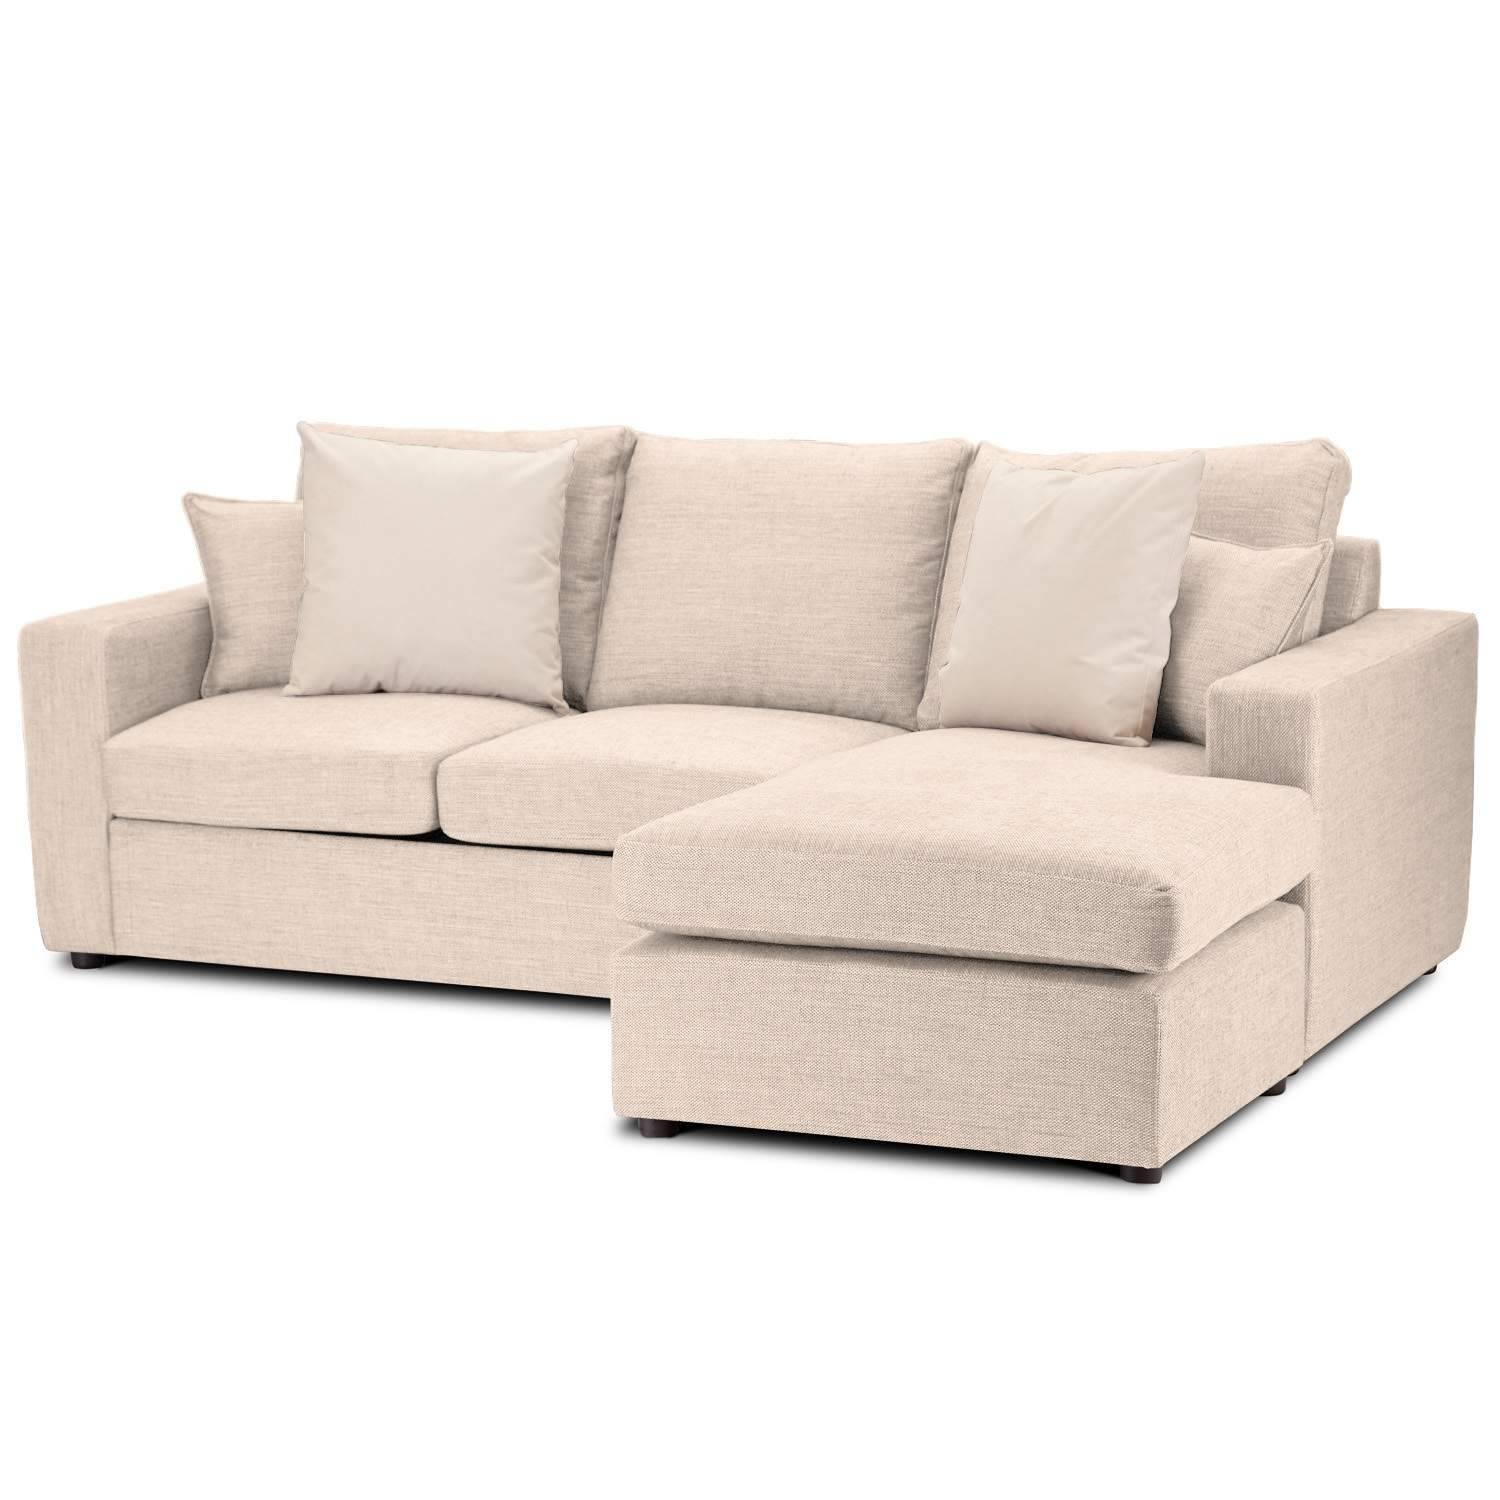 Furniture: Camden Sofa With Classic Style For Your Home regarding Sears Sofa (Image 2 of 25)